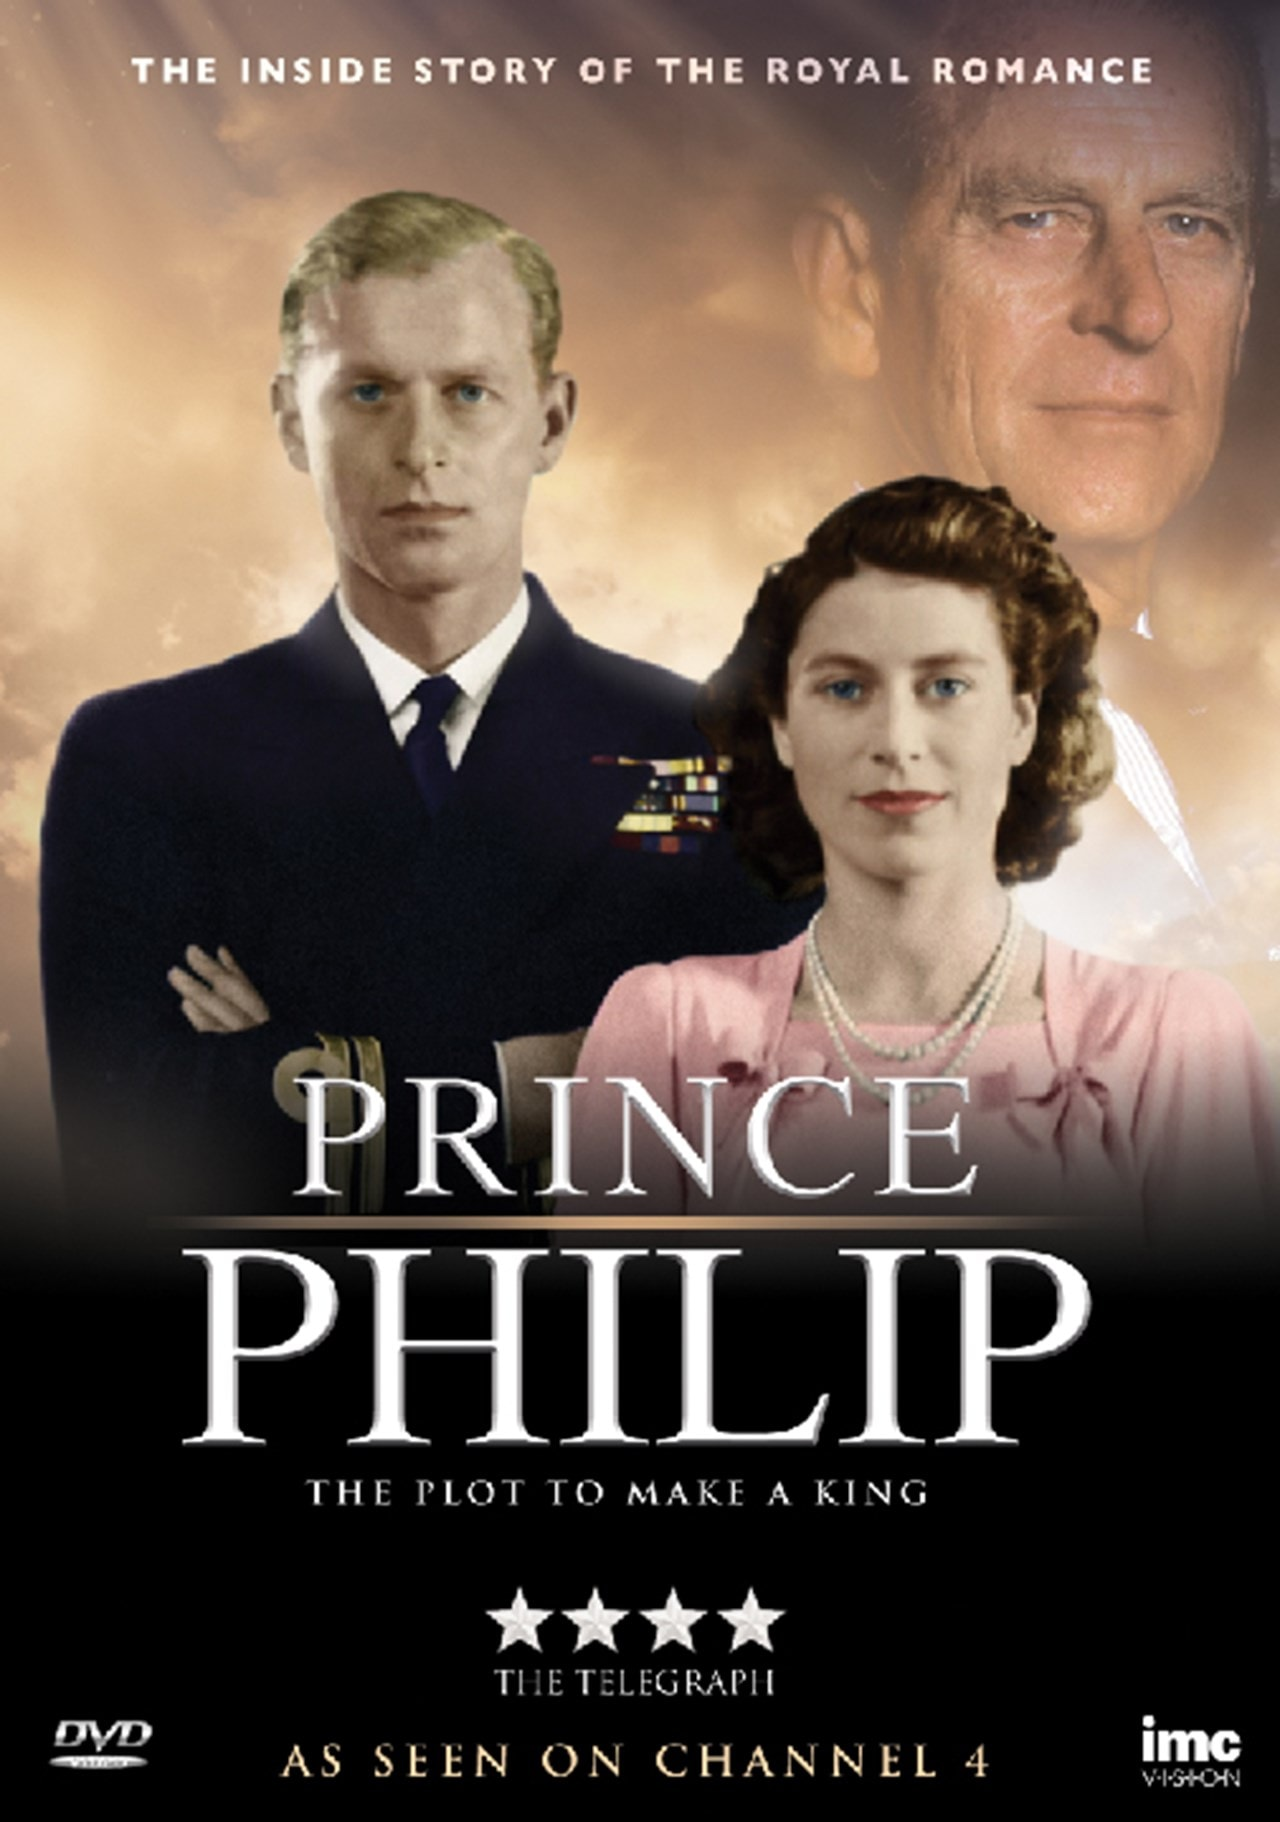 Prince Philip - The Plot to Make a King - 1